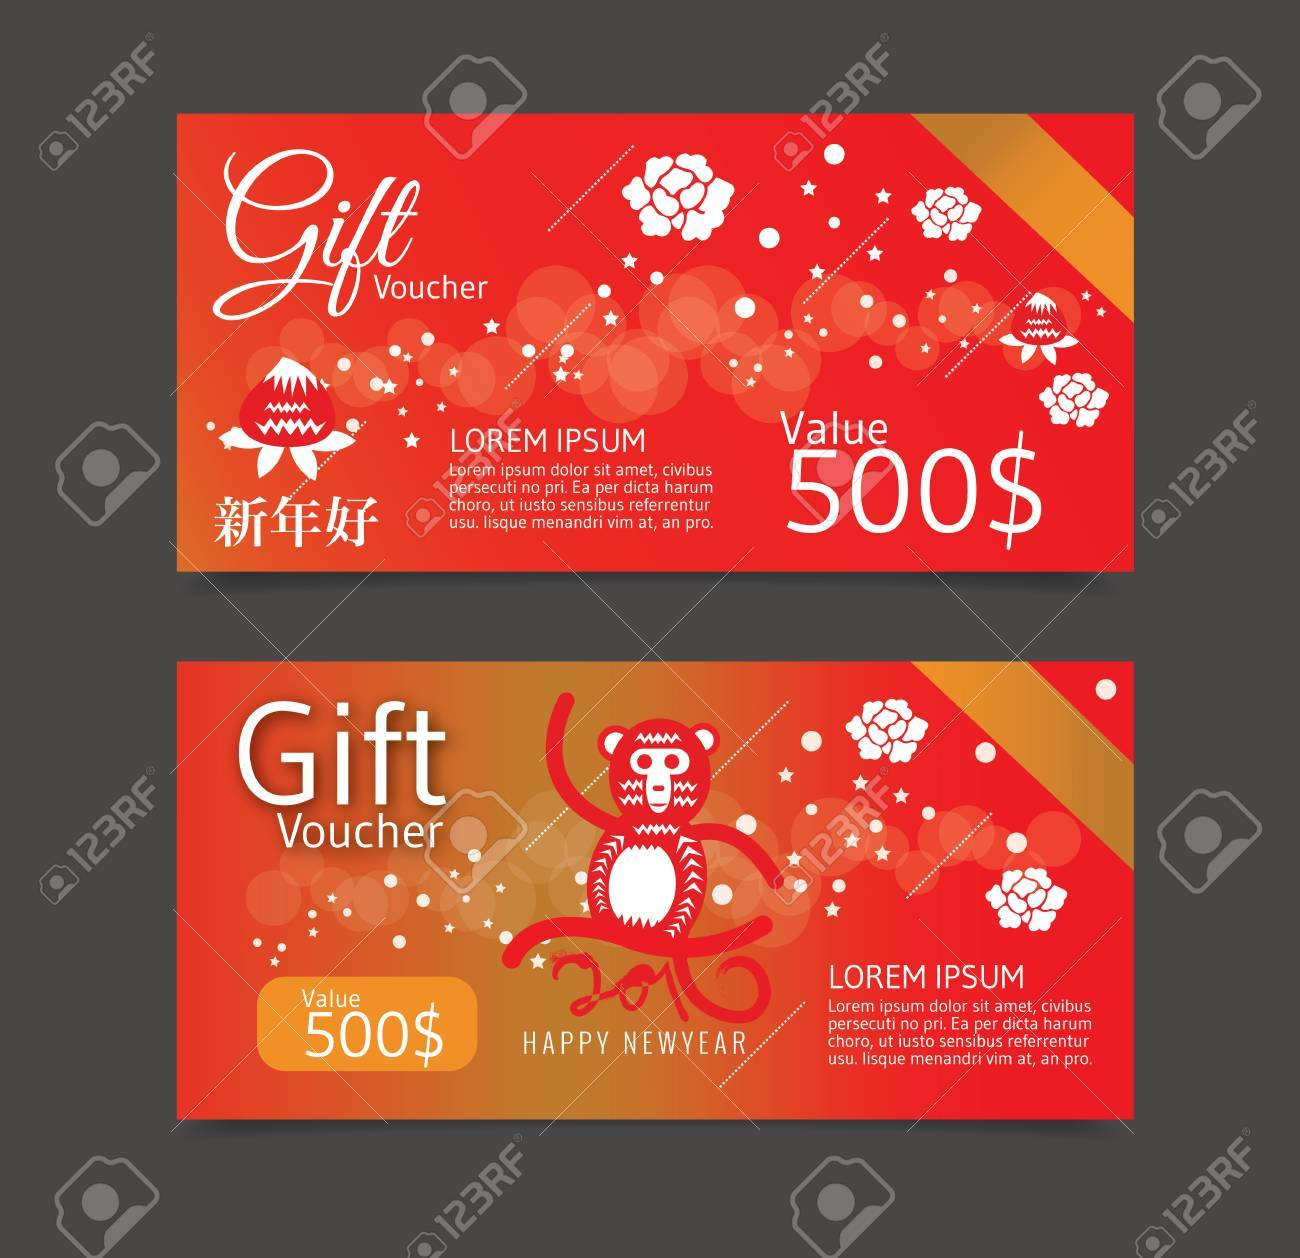 f4dd49a5d2d Chinese New Year Gift Voucher